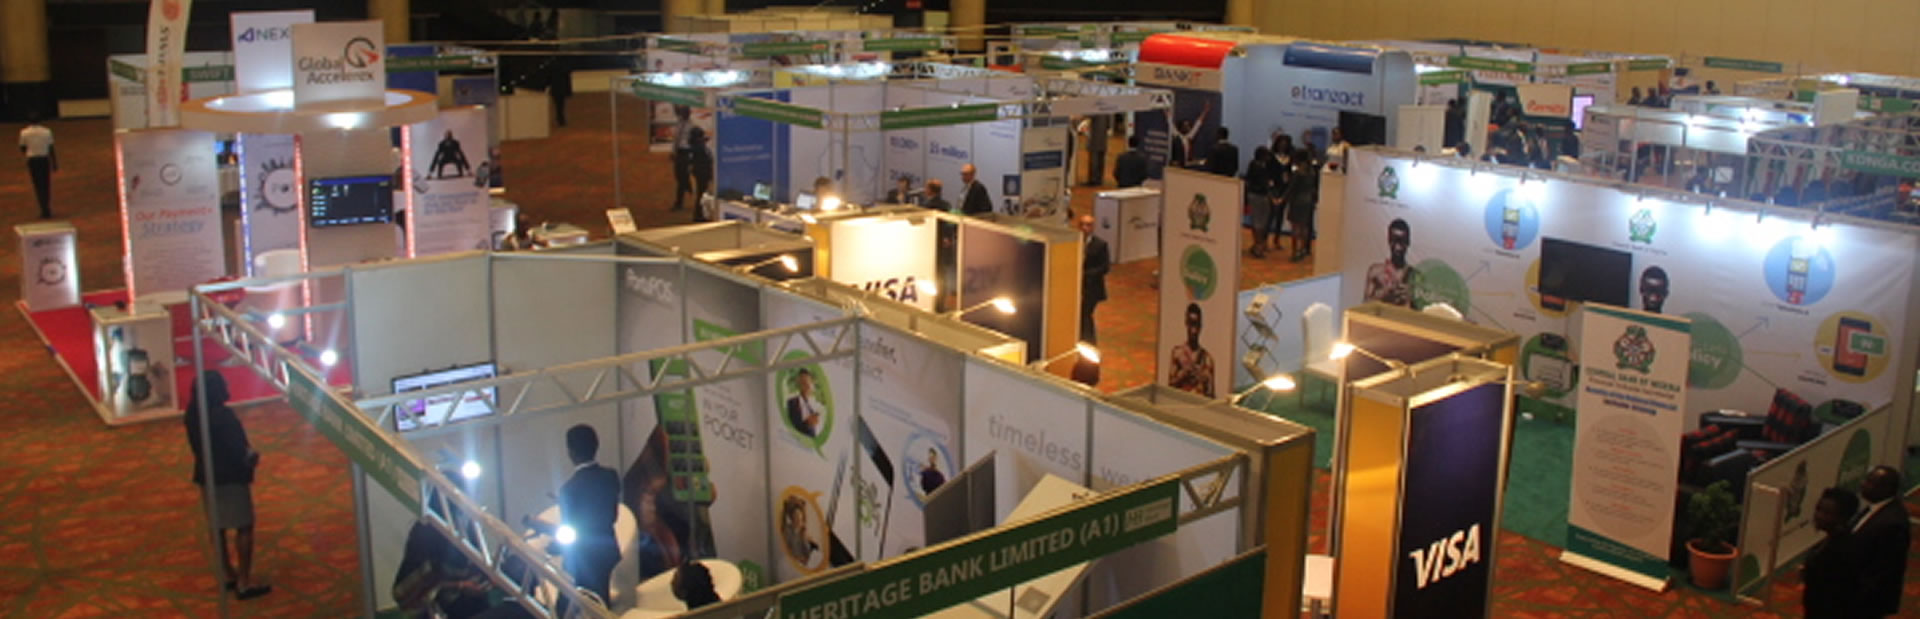 Fintech Exhibition Booths